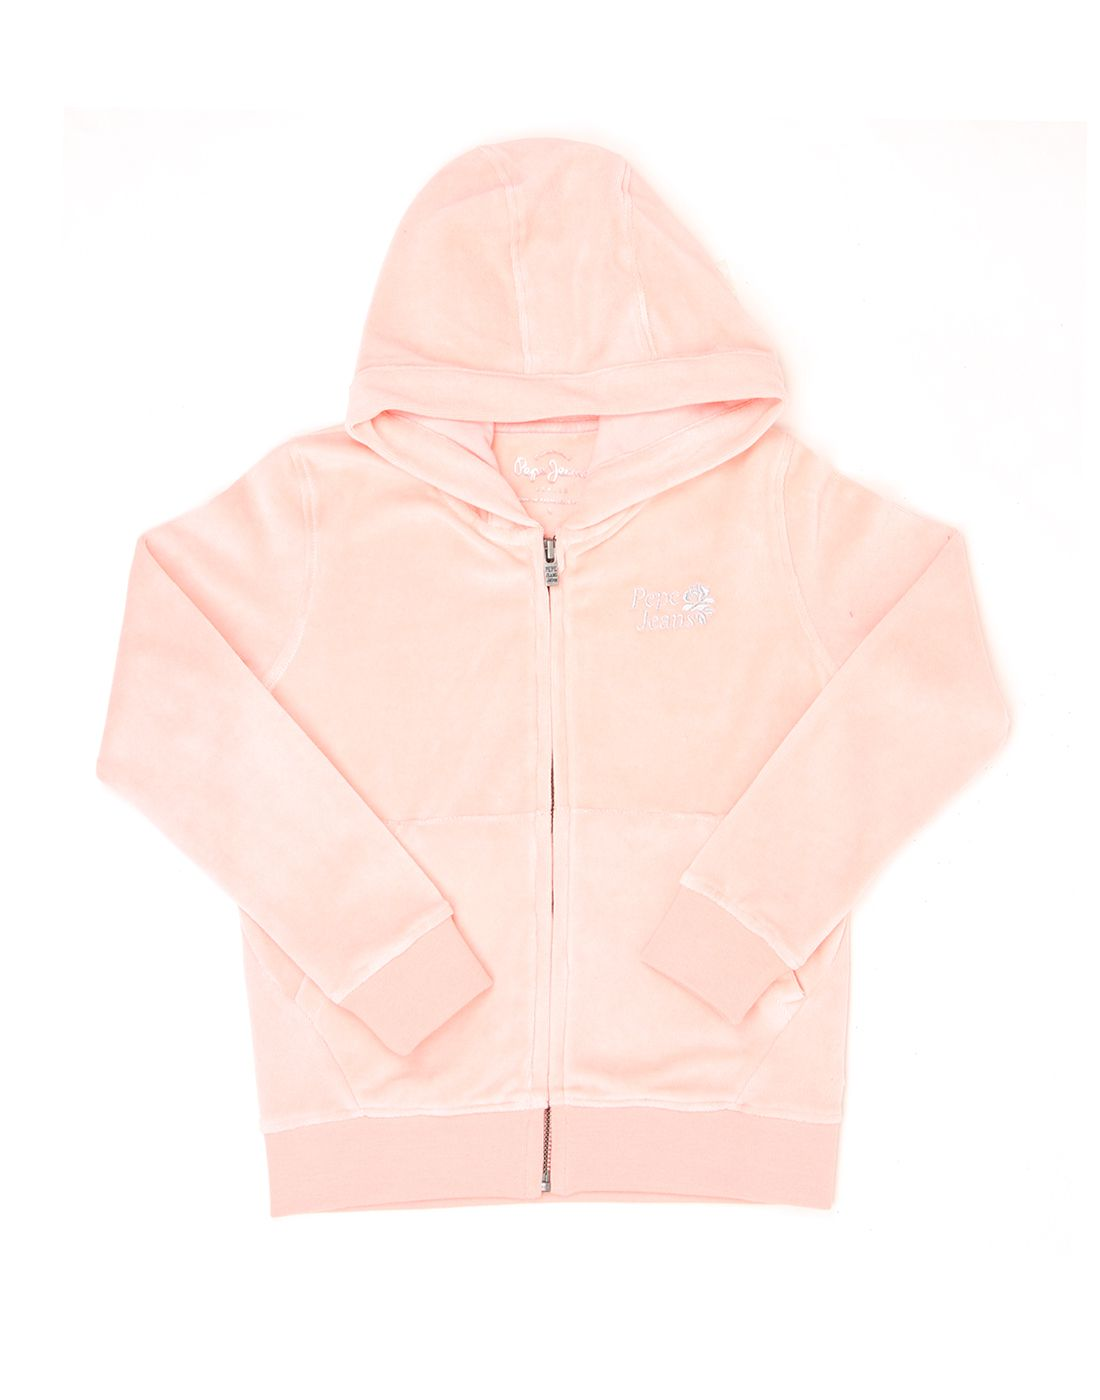 Pepe Jeans Girls Pink Solid Sweat Shirt